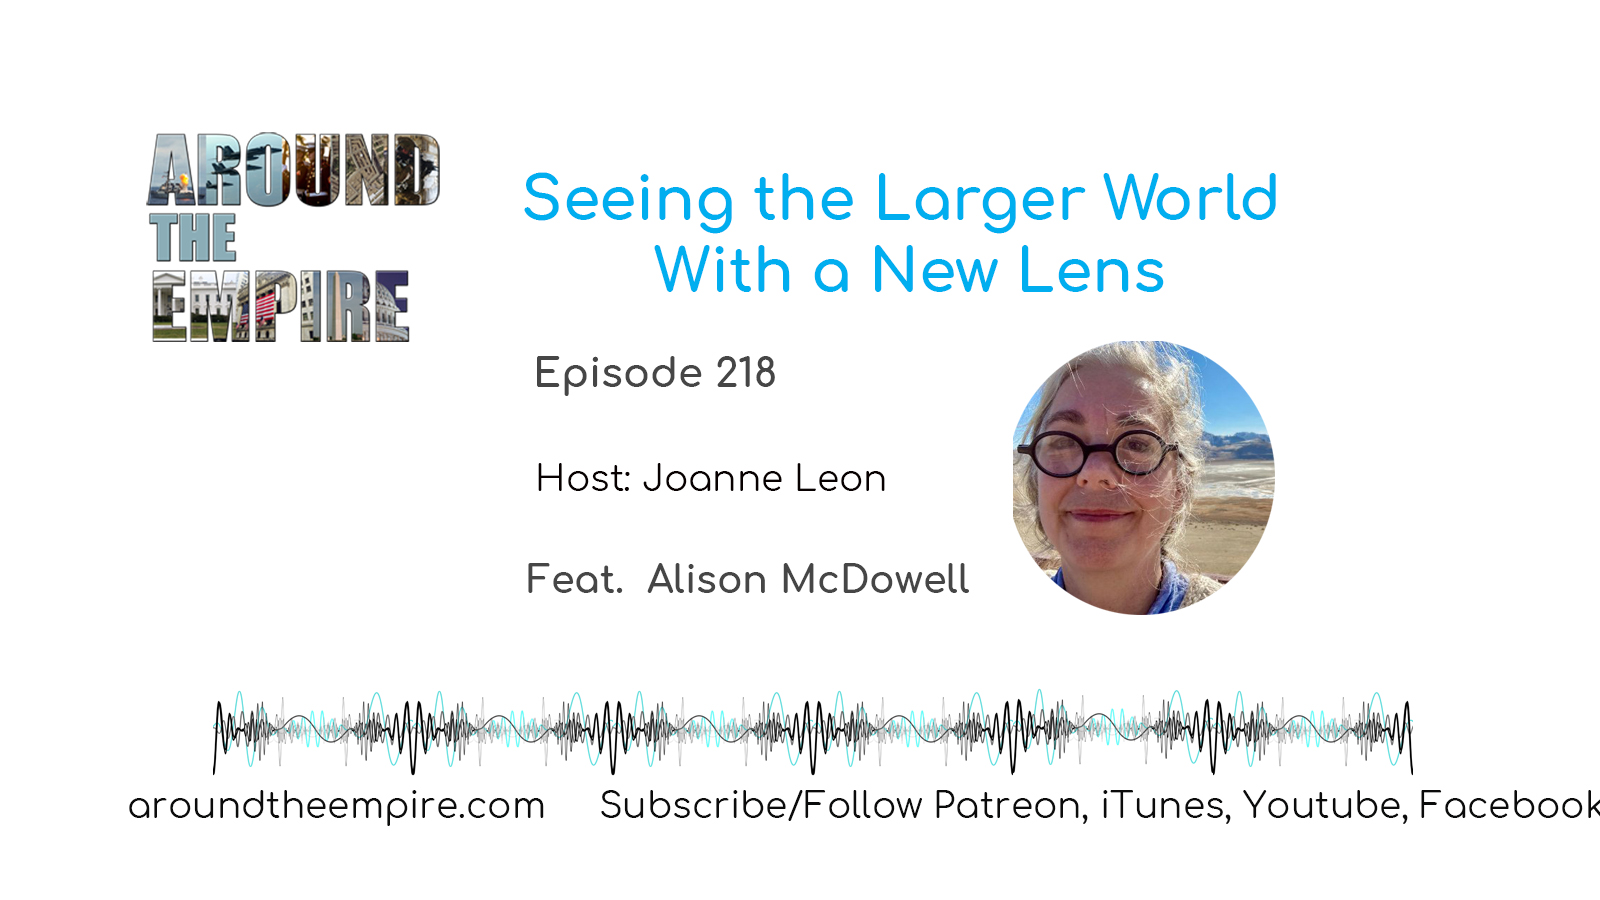 Ep 218 Seeing the Larger World With a New Lens feat Alison McDowell